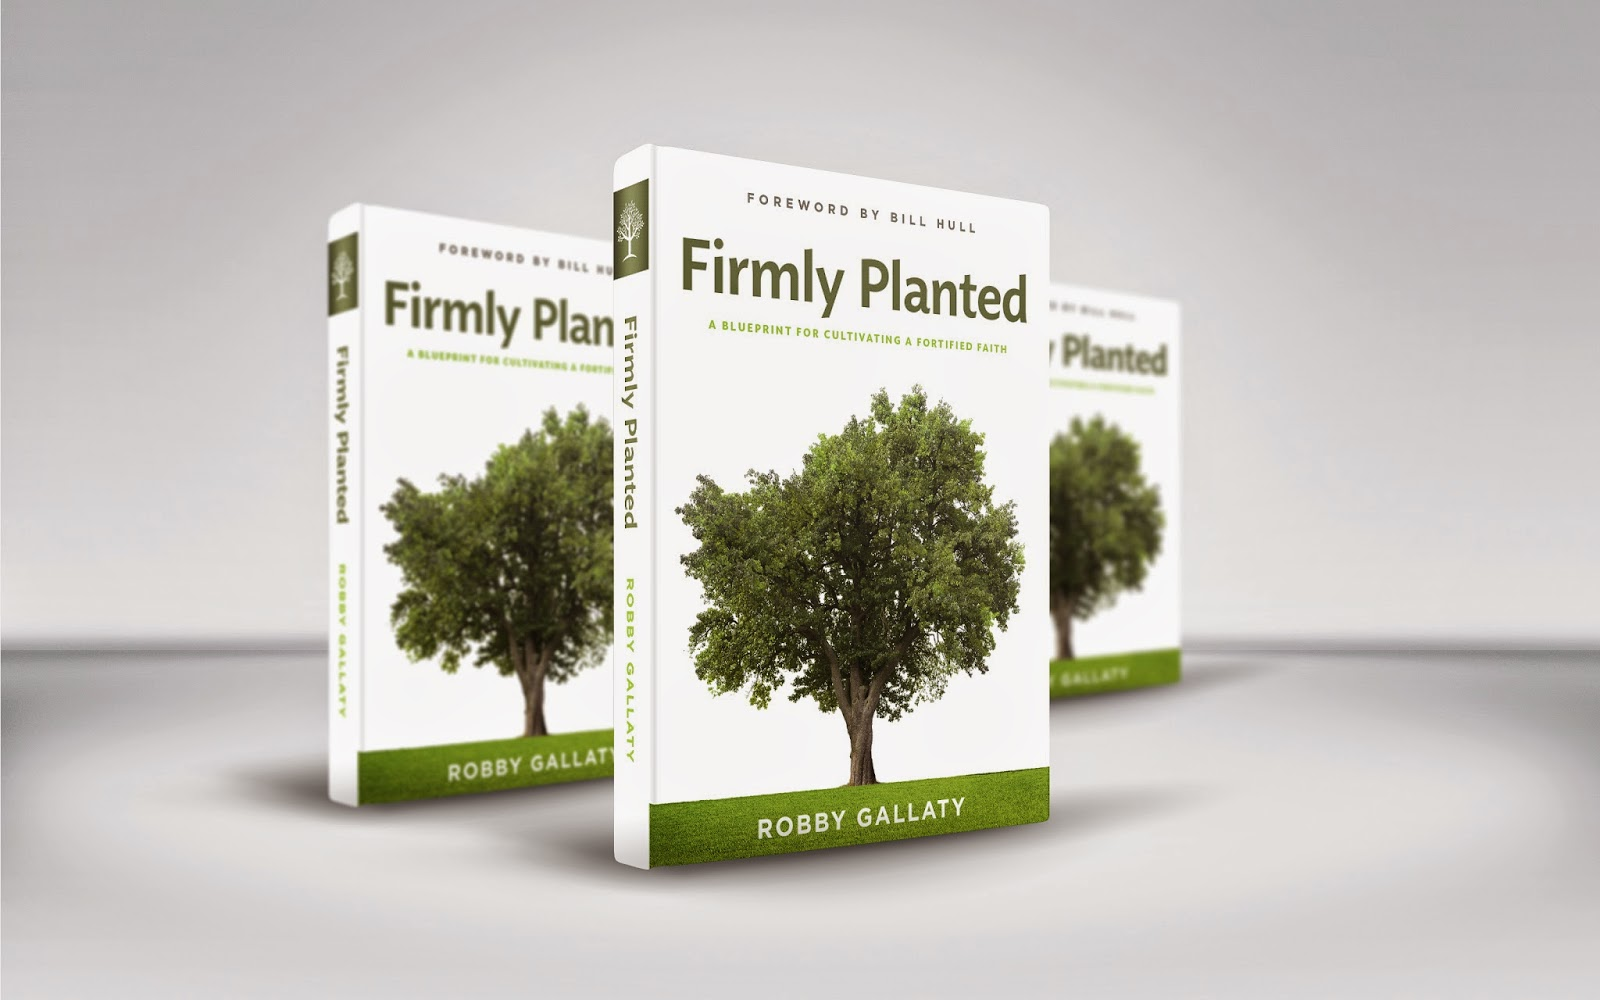 http://www.amazon.com/Firmly-Planted-Cultivate-Rooted-Christ/dp/146274592X/ref=sr_1_1?ie=UTF8&qid=1426817047&sr=8-1&keywords=firmly+planted+robby+gallaty